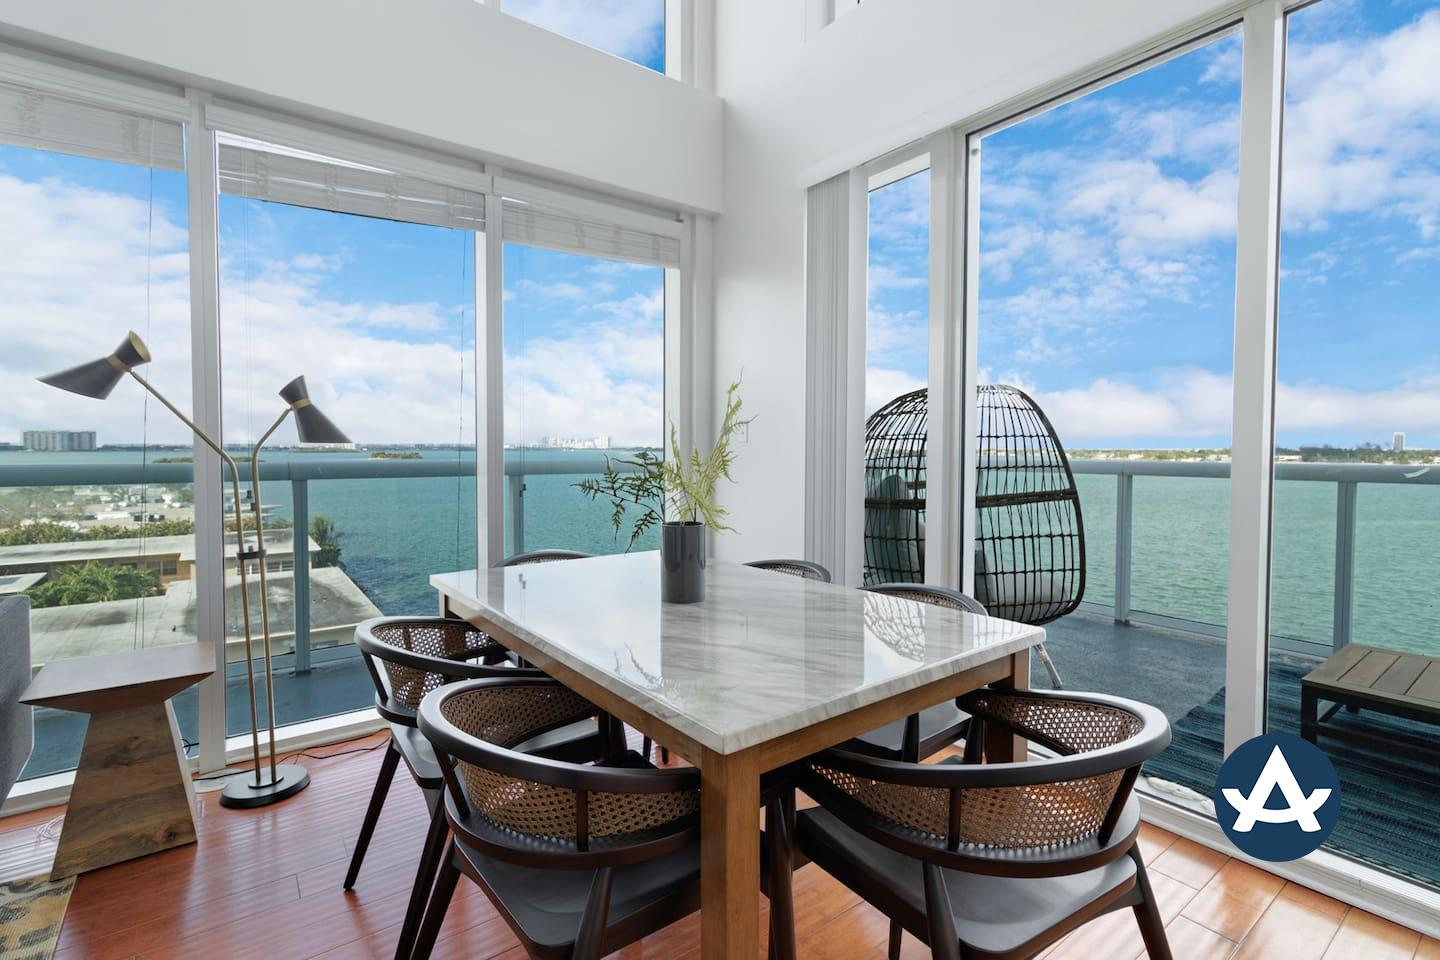 Welcome to Sextant's 2-Story Waterfront Condo!